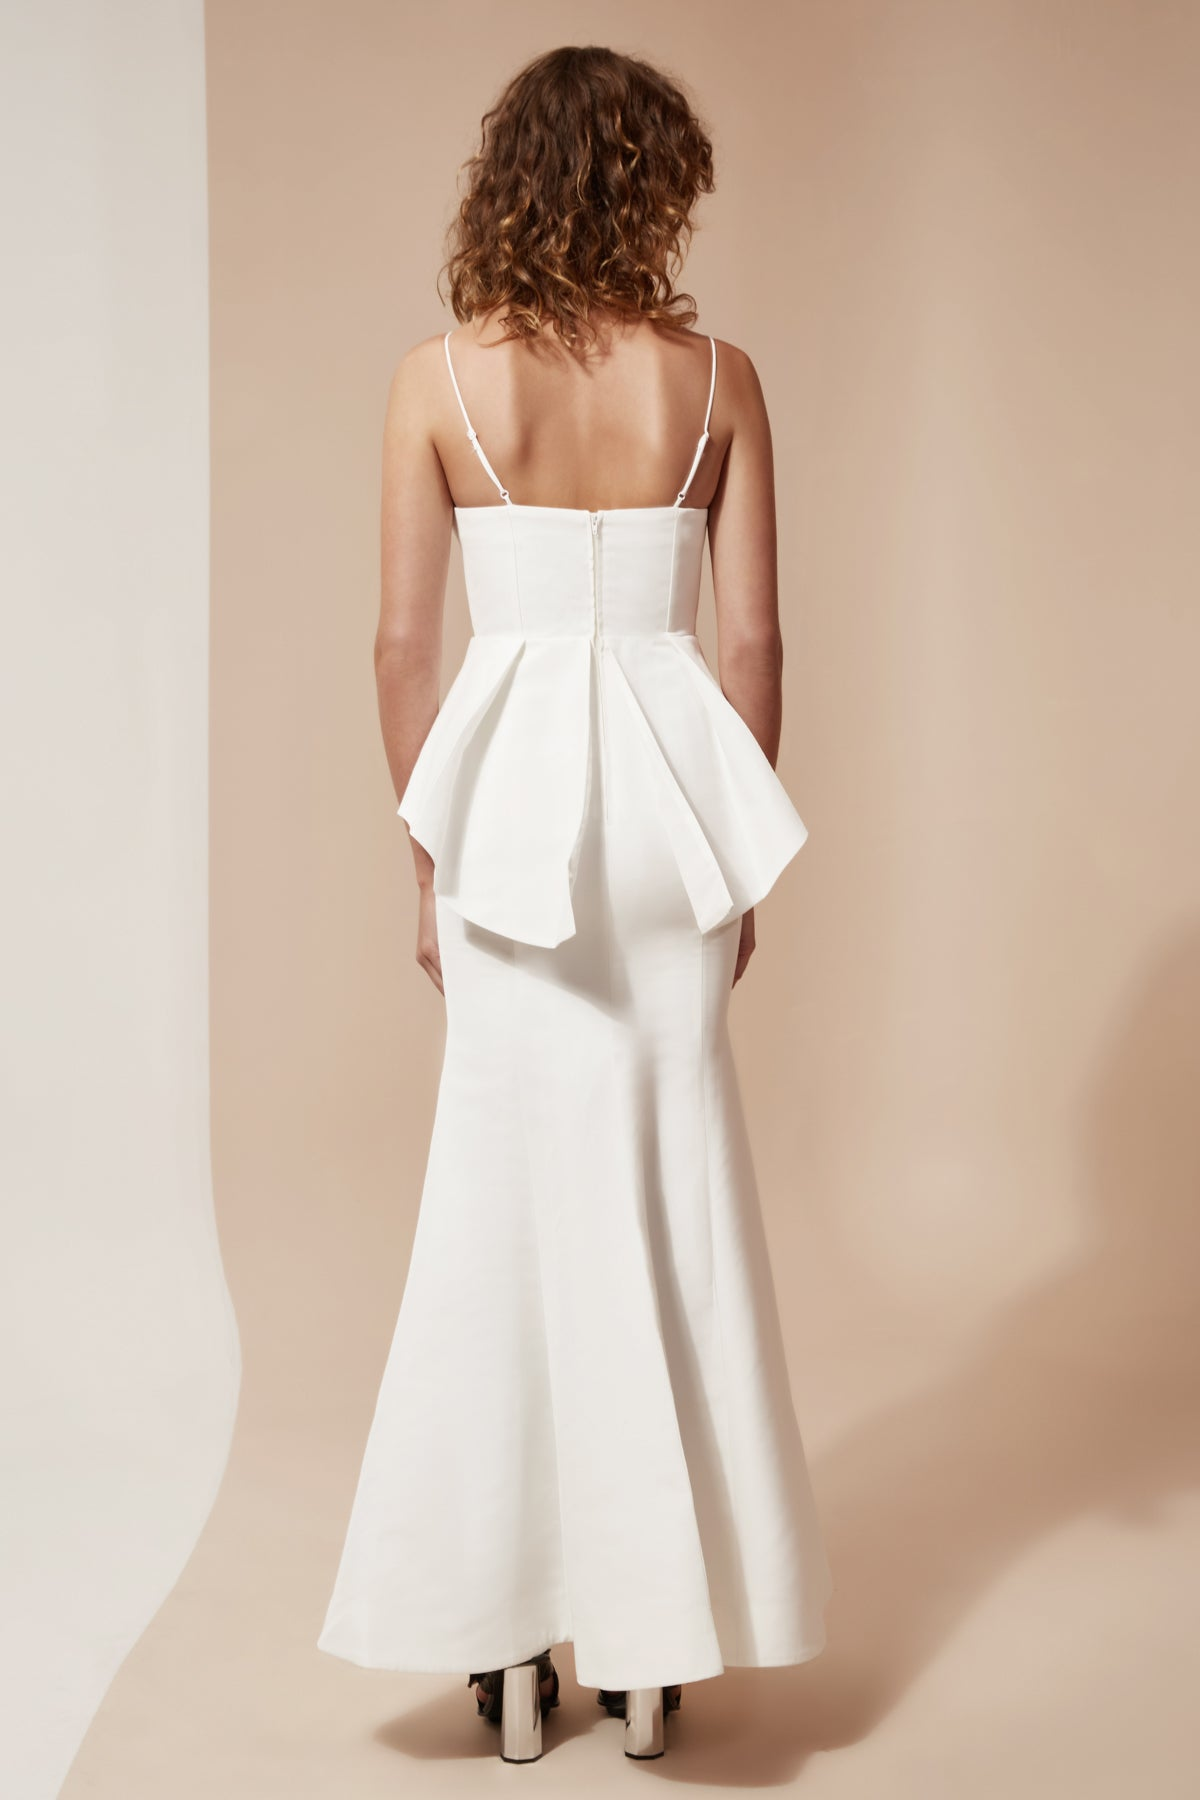 CONDUIT FULL LENGTH DRESS ivory